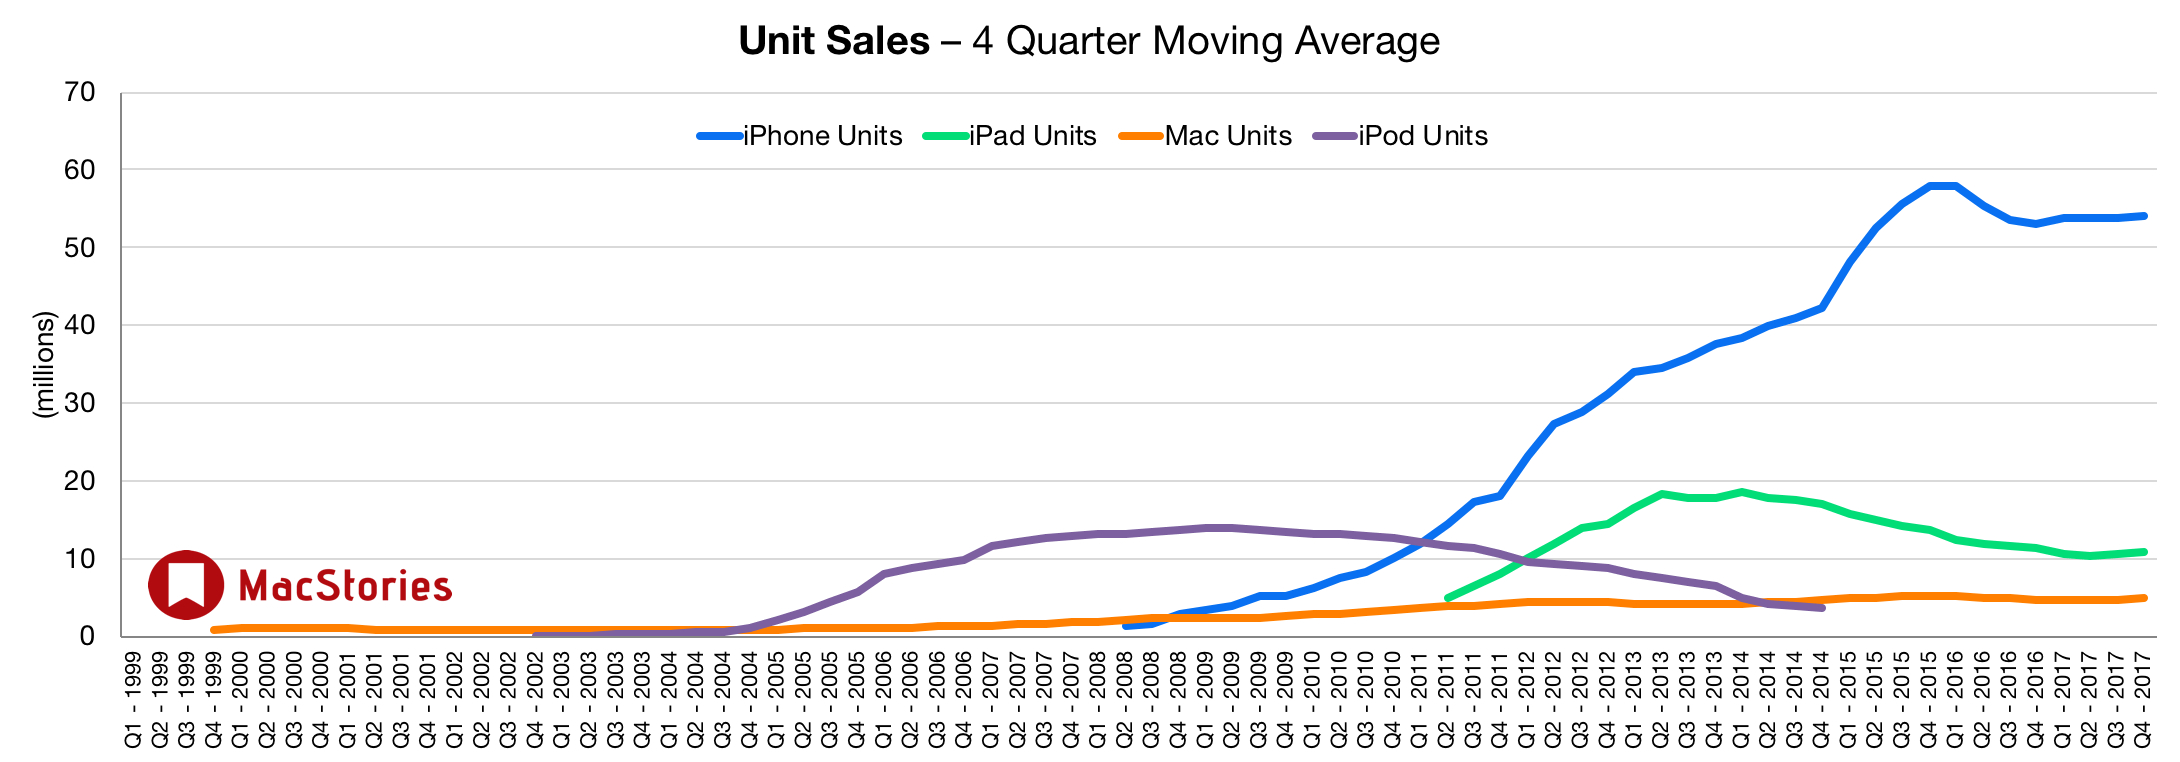 MacStories unit sales graph